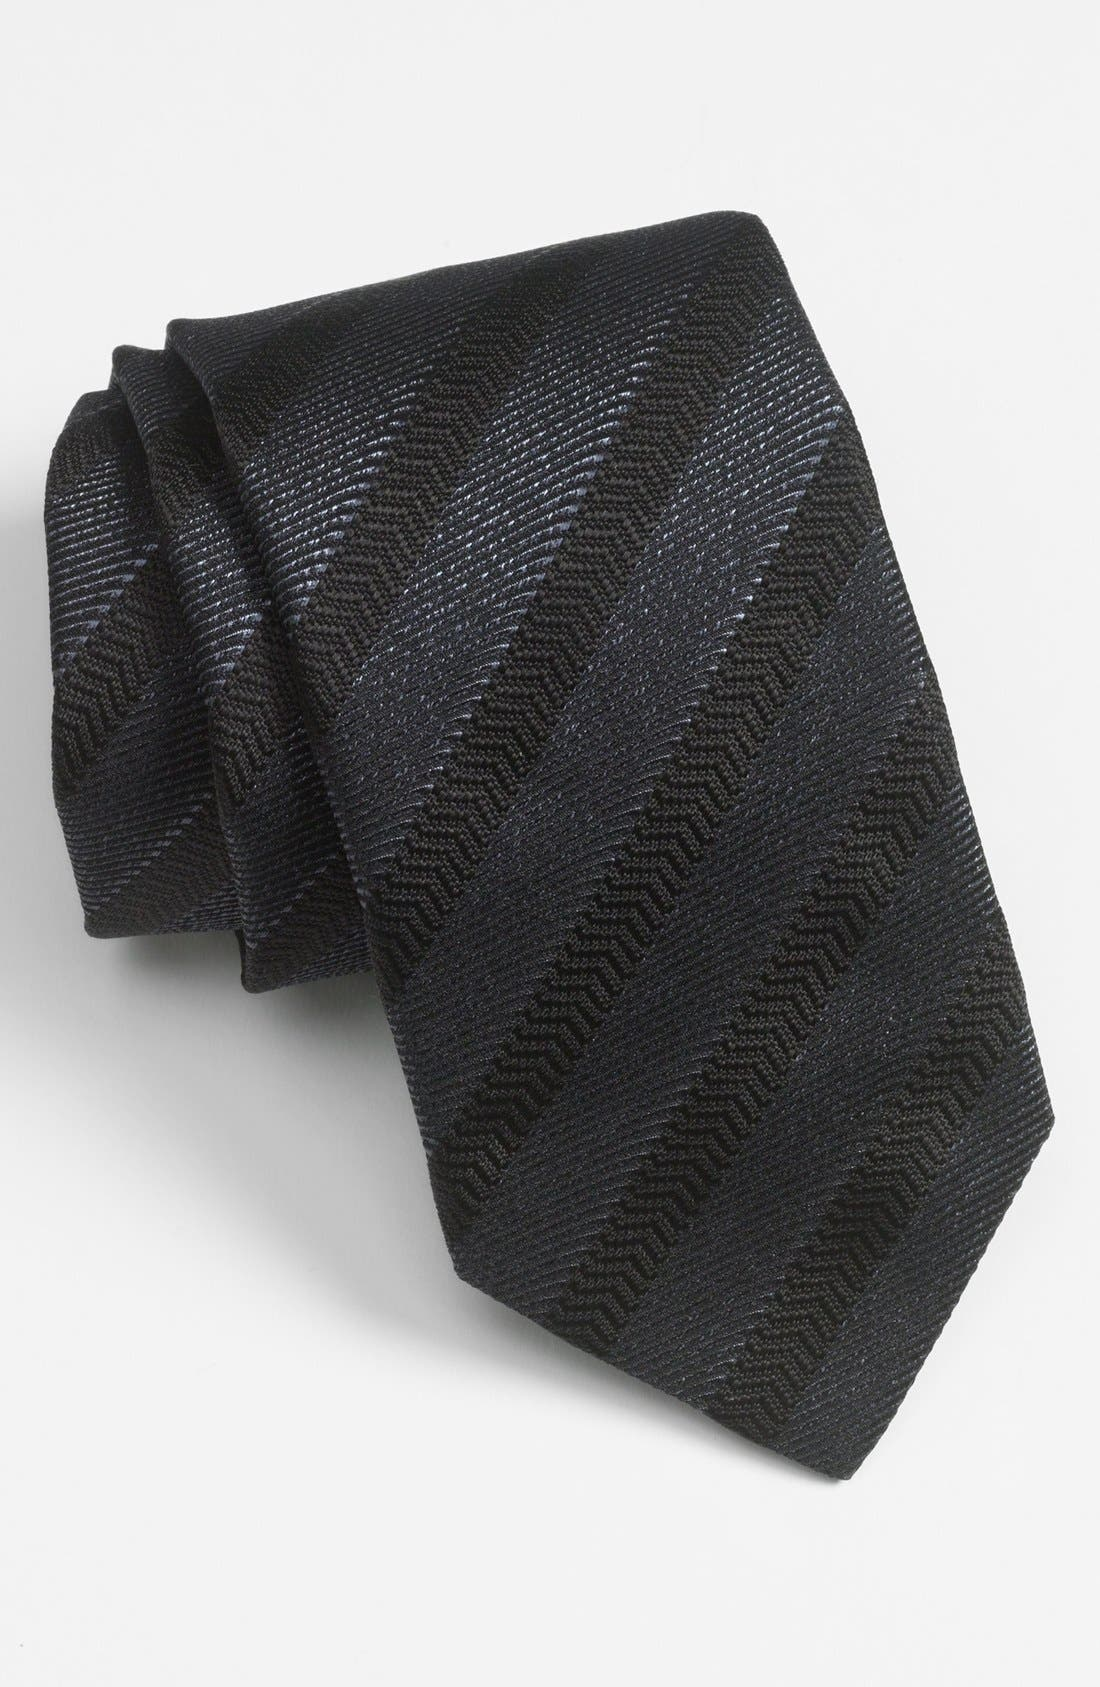 Alternate Image 1 Selected - Yves Saint Laurent Woven Herringbone Tie